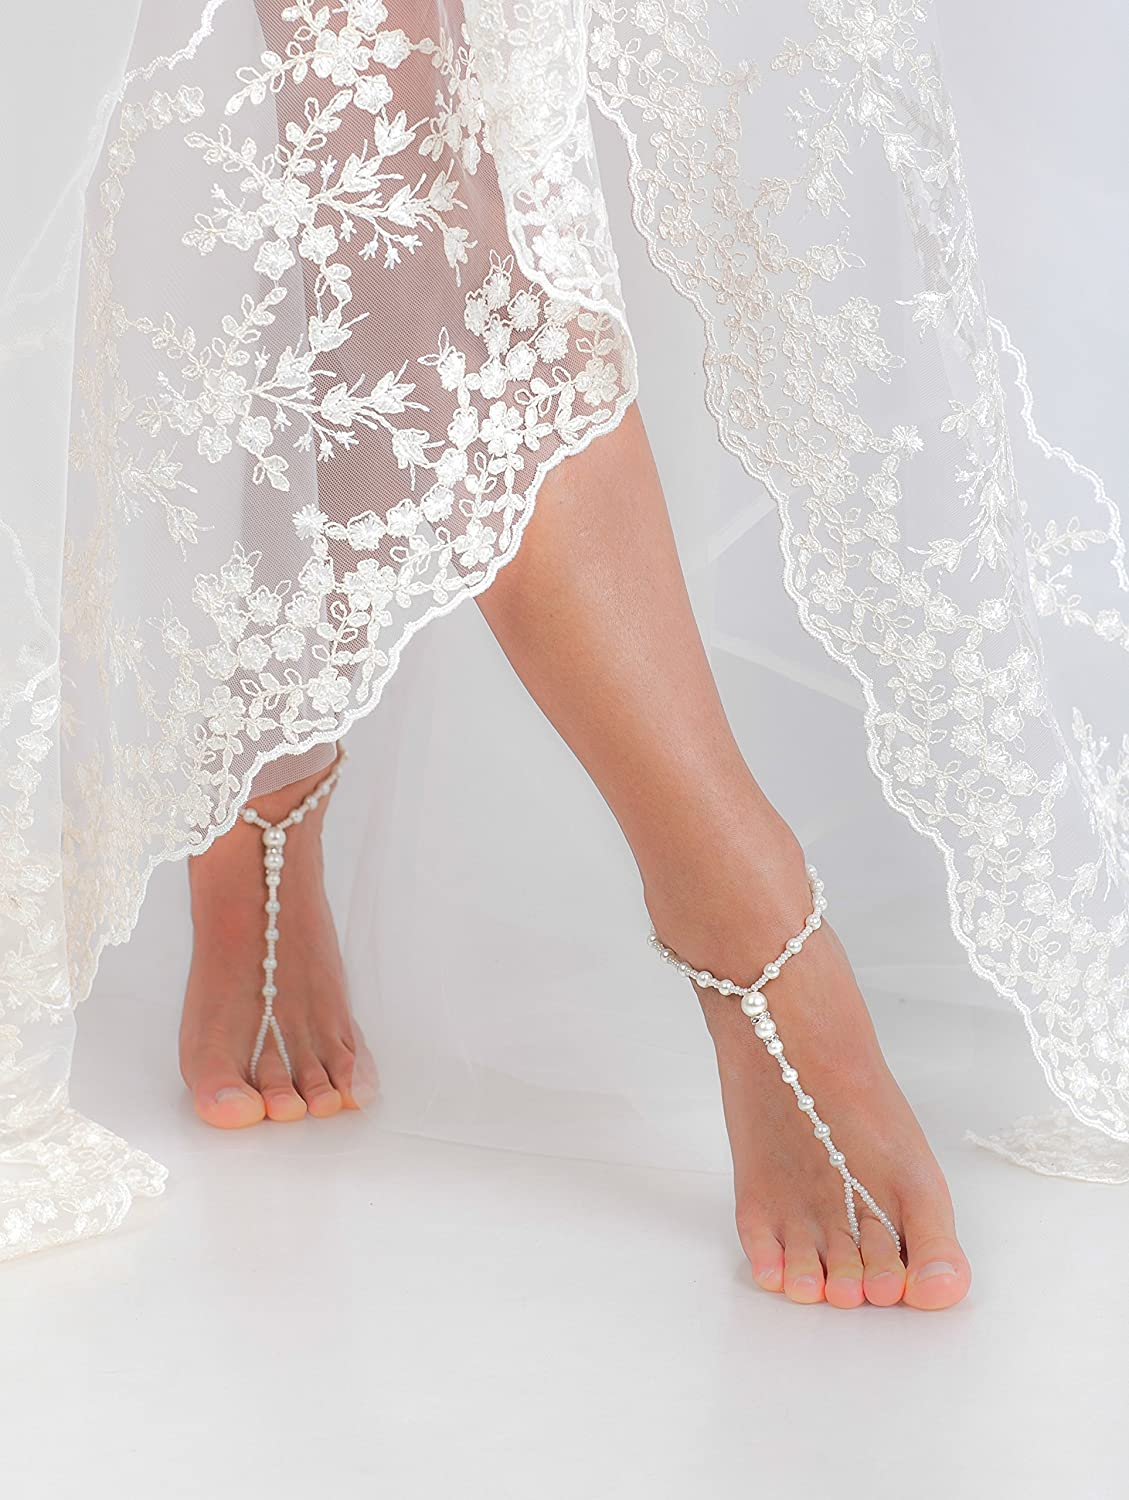 dedc63ec1202c Beaded Barefoot sandals Bridal foot jewelry Rhinestone and Pearl Beach  wedding Barefoot Sandals Bridal accessory Foot jewelry Wedding shoes